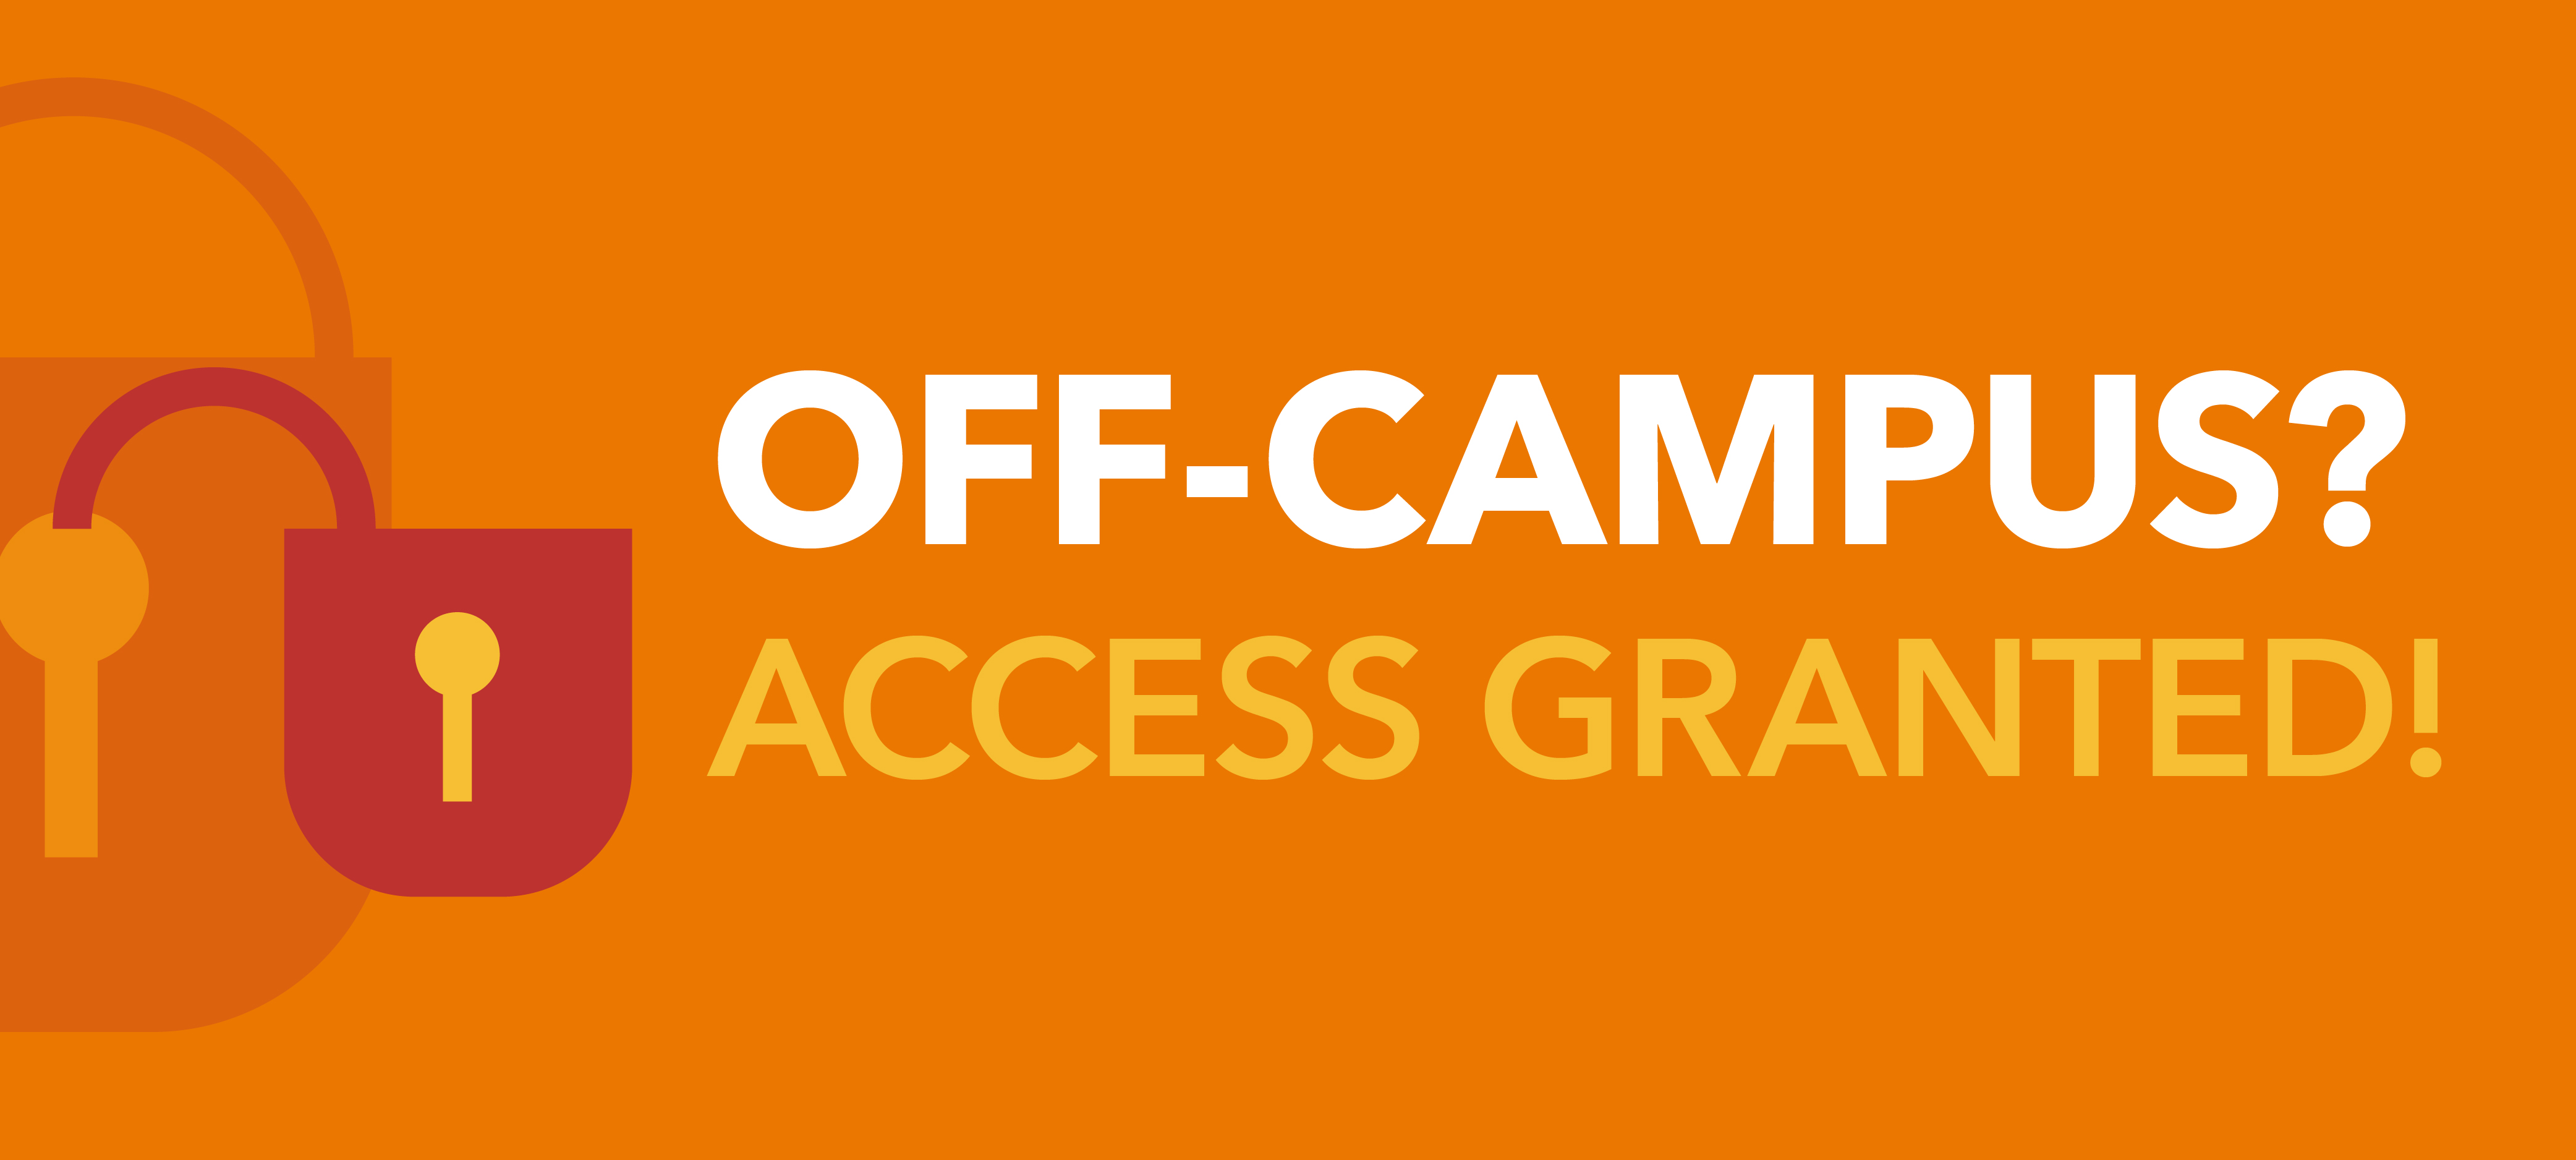 Off-Campus? Access Granted